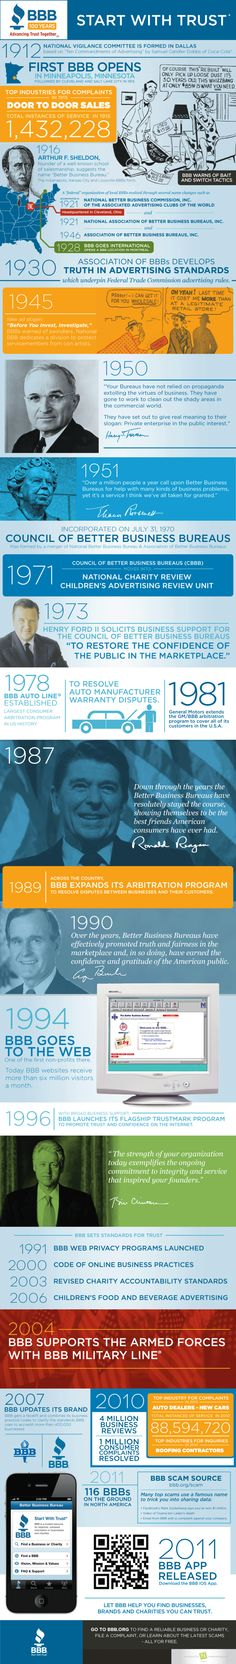 What Is The Evolution of the Better Business Bureau? #infographic